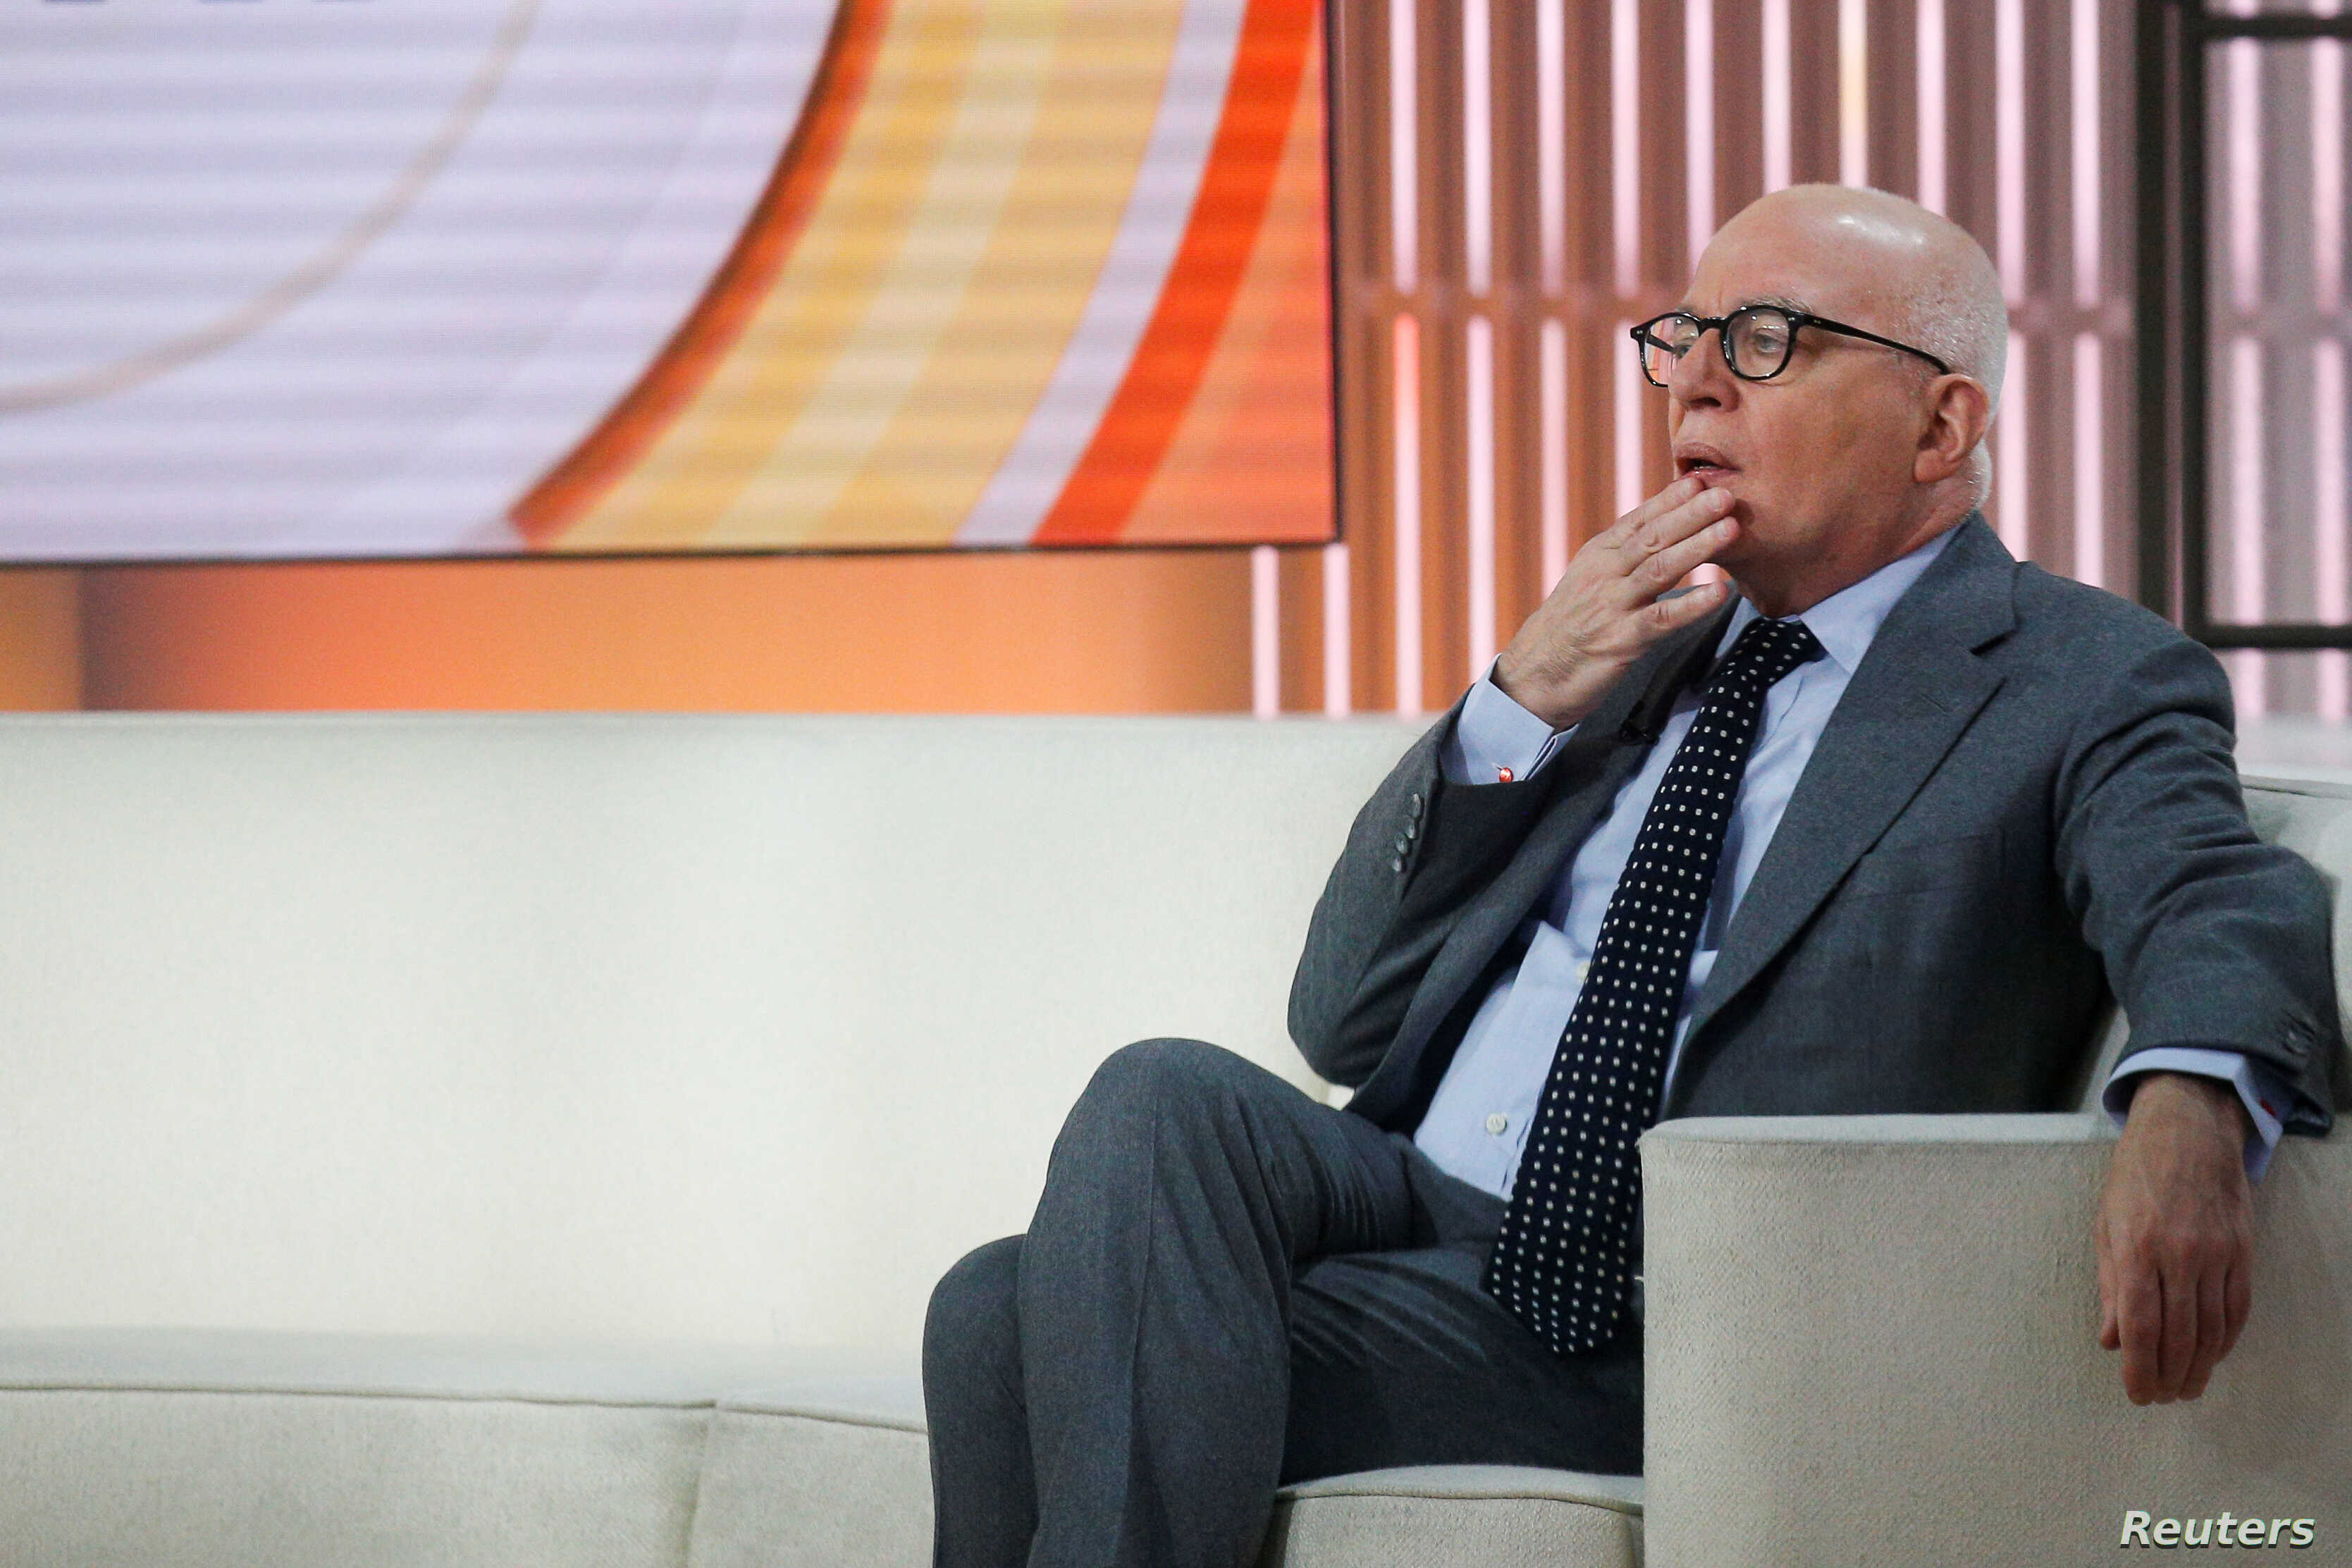 """Author Michael Wolff is seen on the set of NBC's """"Today"""" show prior to an interview about his book """"Fire and Fury: Inside the Trump White House"""" in New York City, Jan. 5, 2018."""